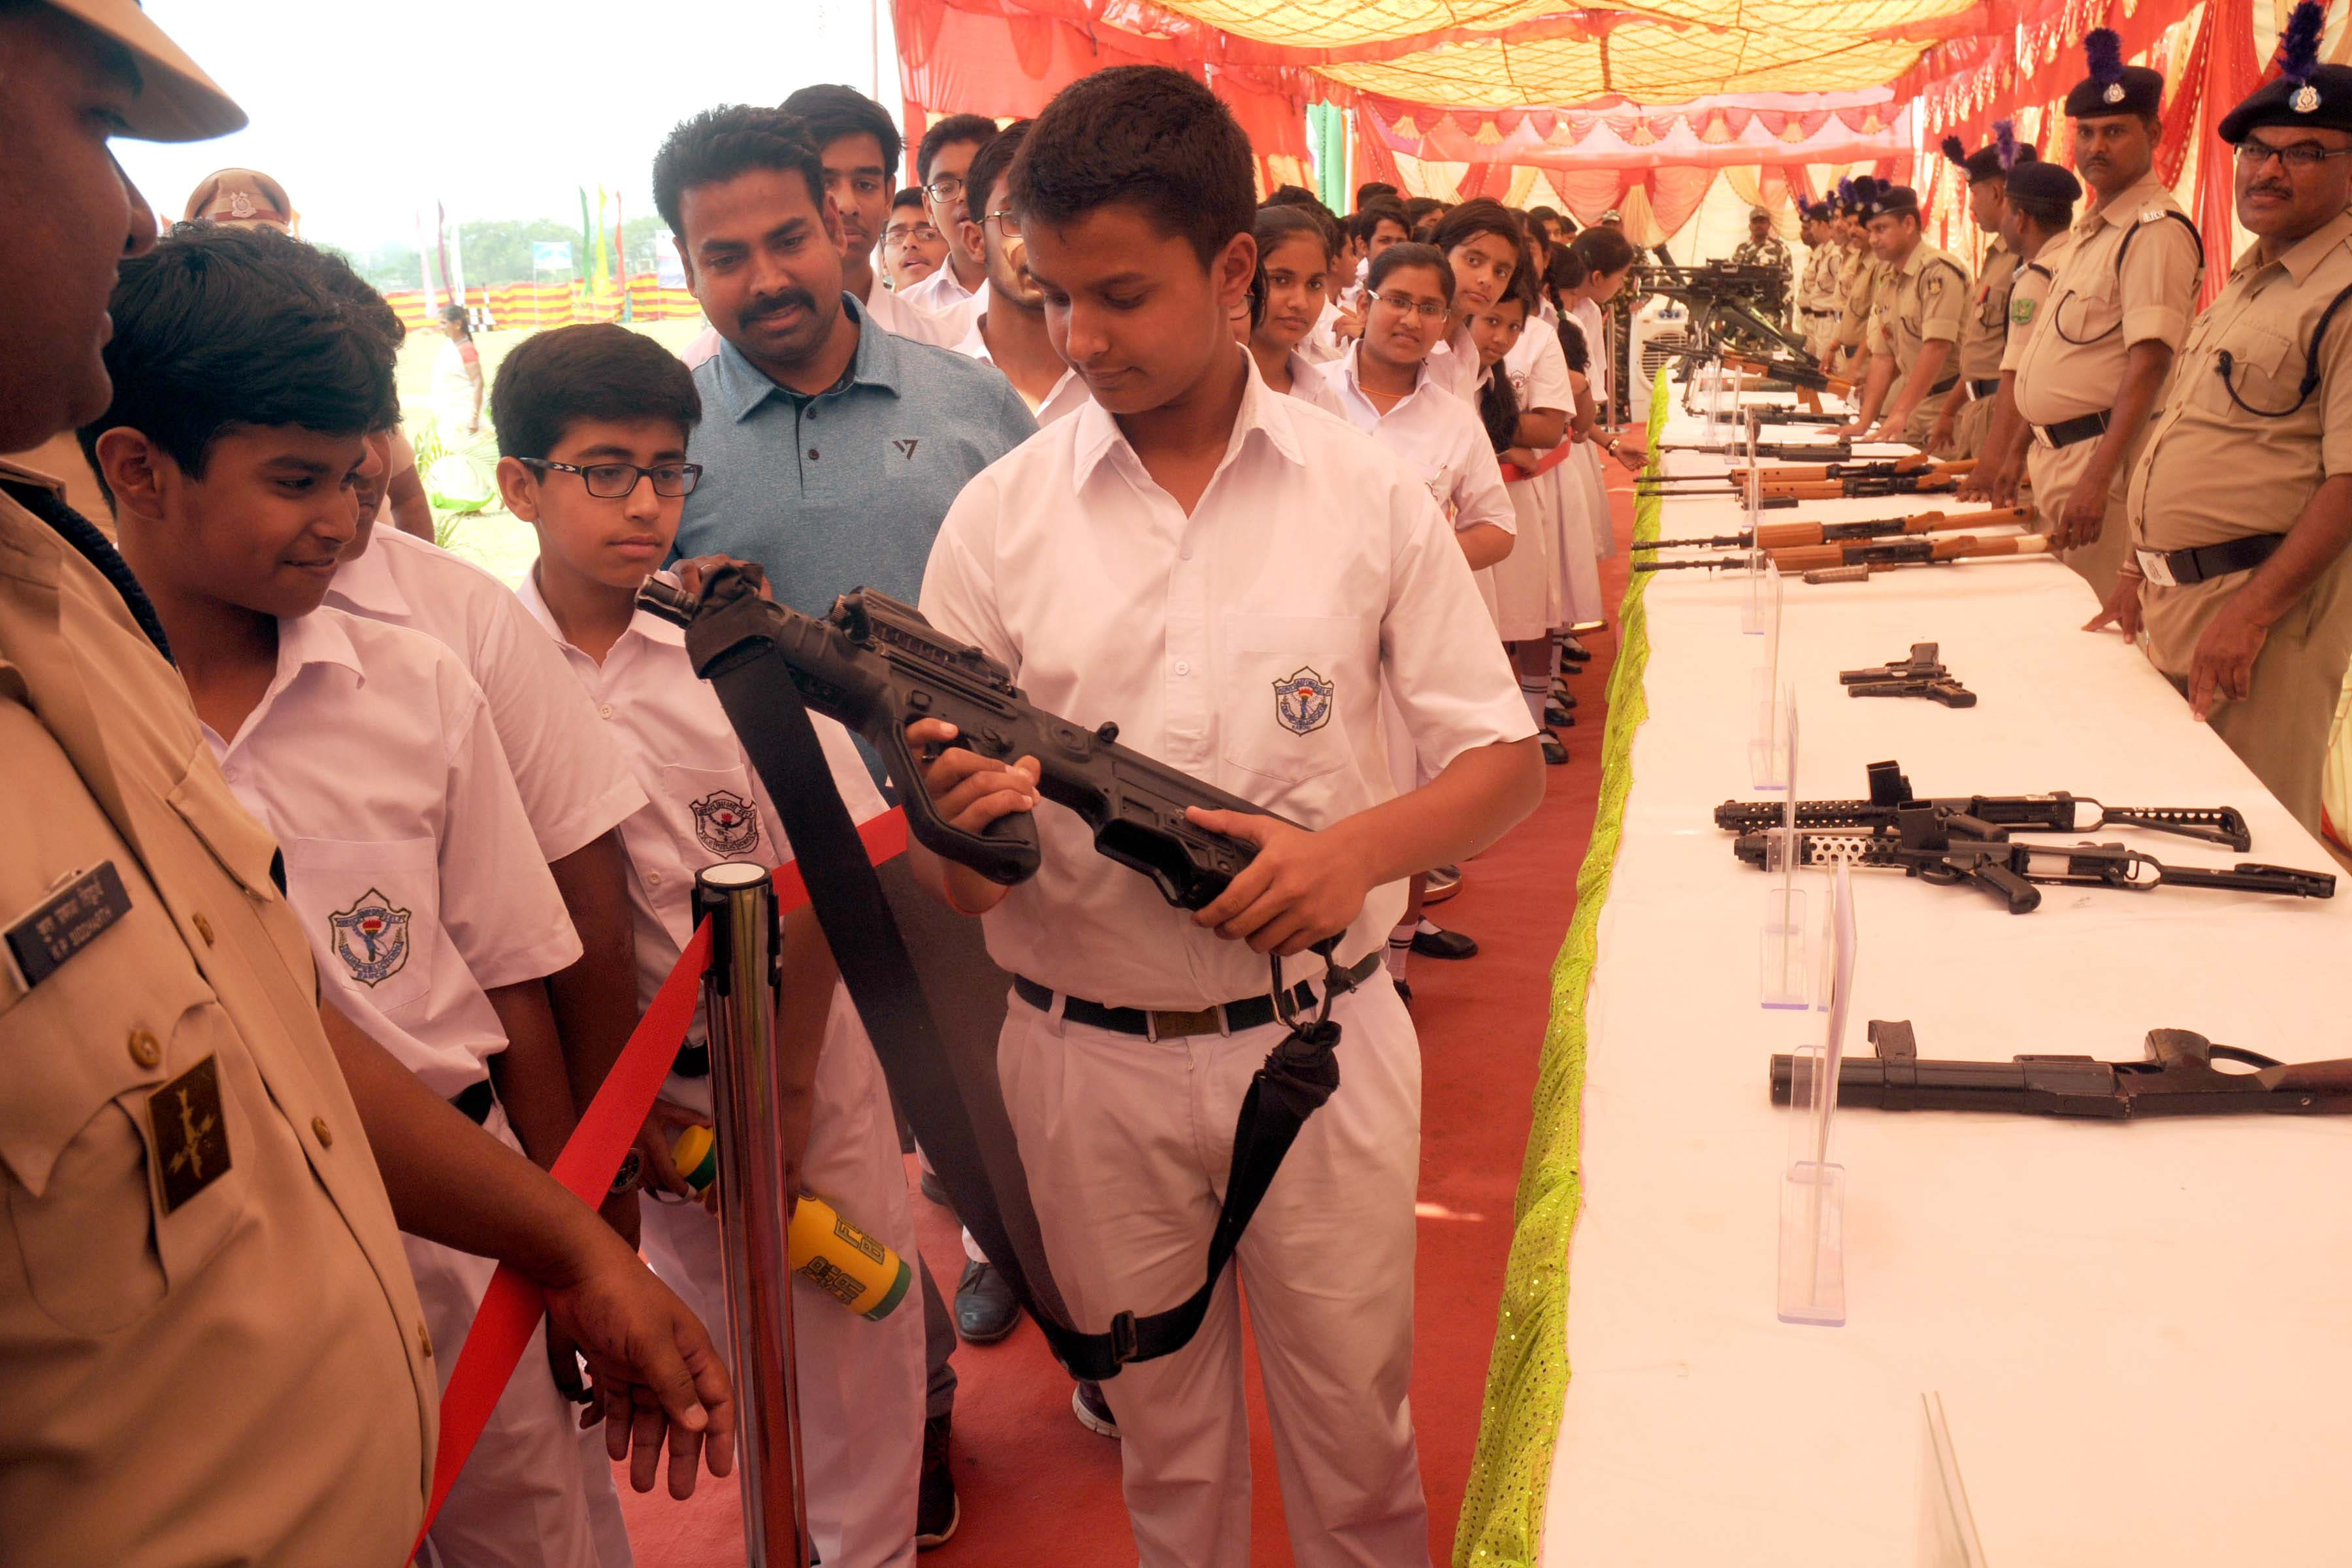 <p>A CRPF official explained the use of arms and ammunition used by the forces in different situations and locations to school children, during an exhibition on the occasion of the&#8230;